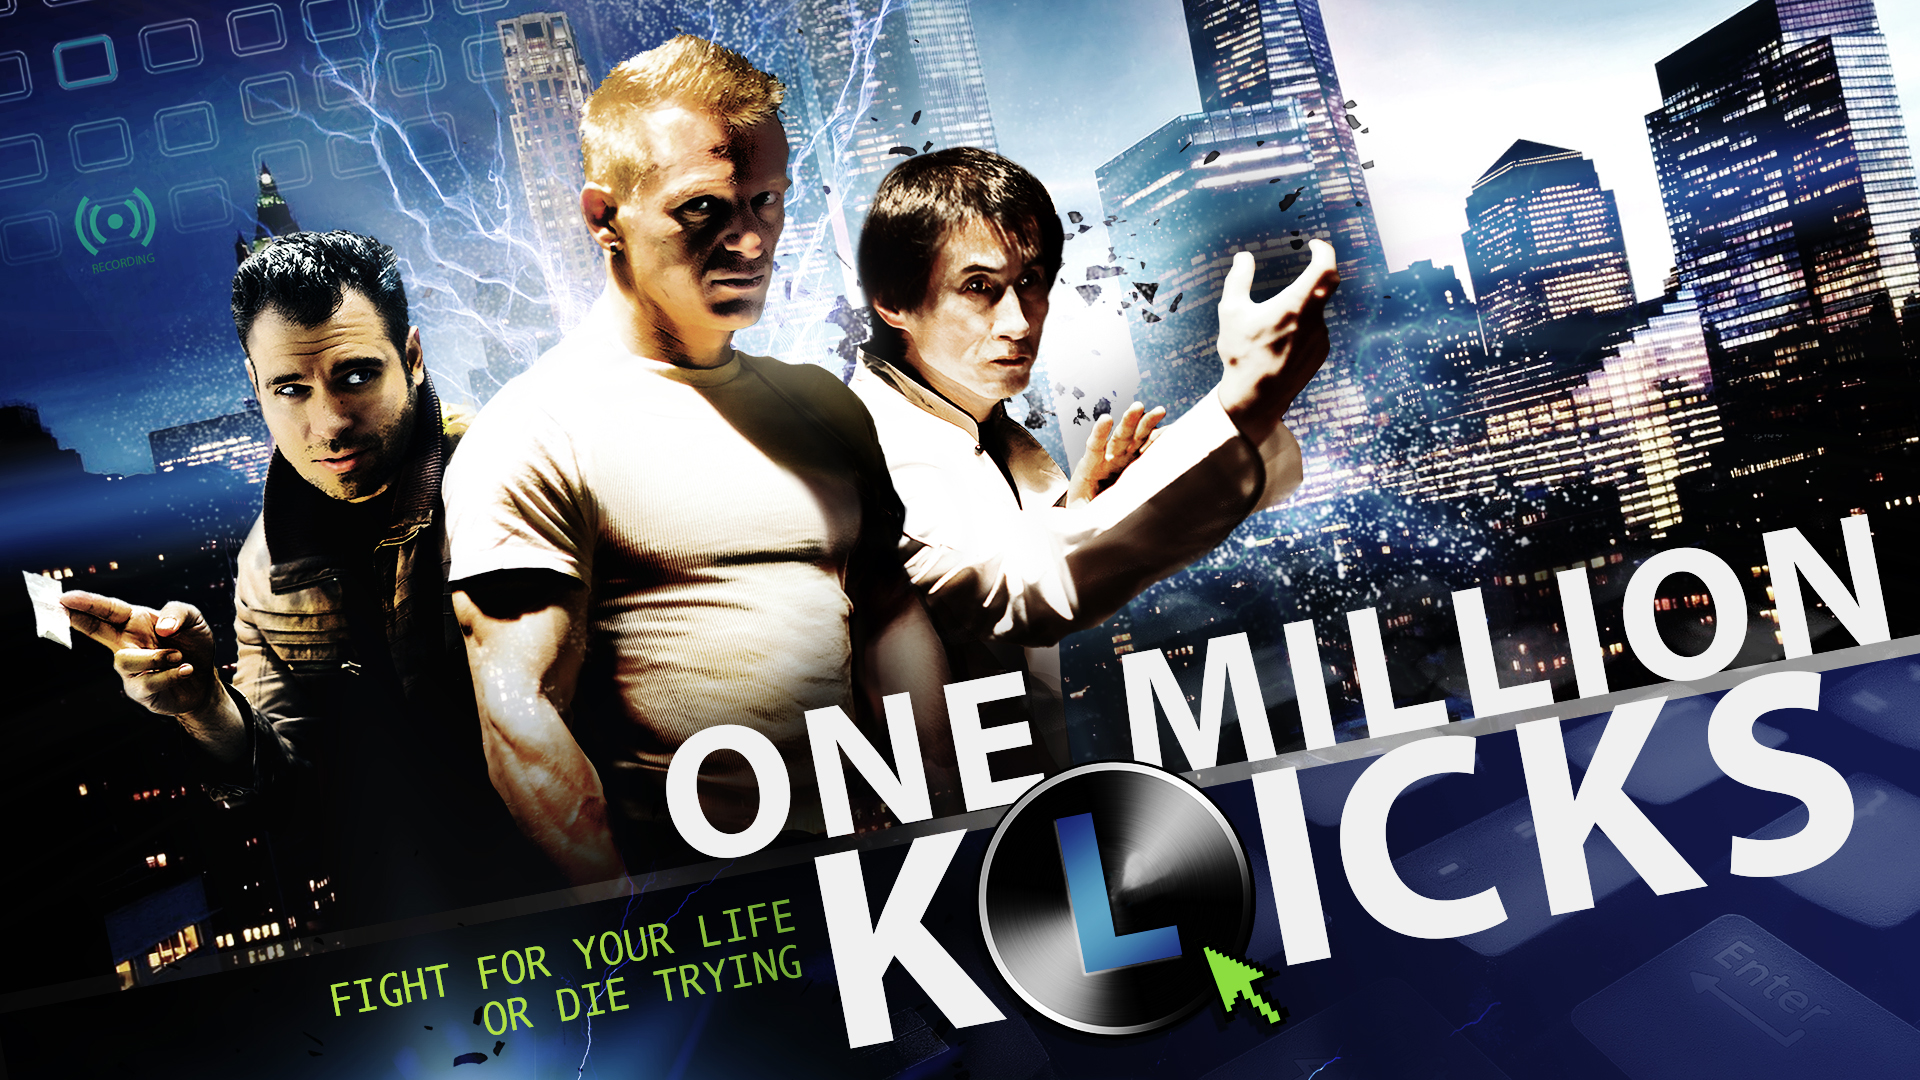 One Million Klicks